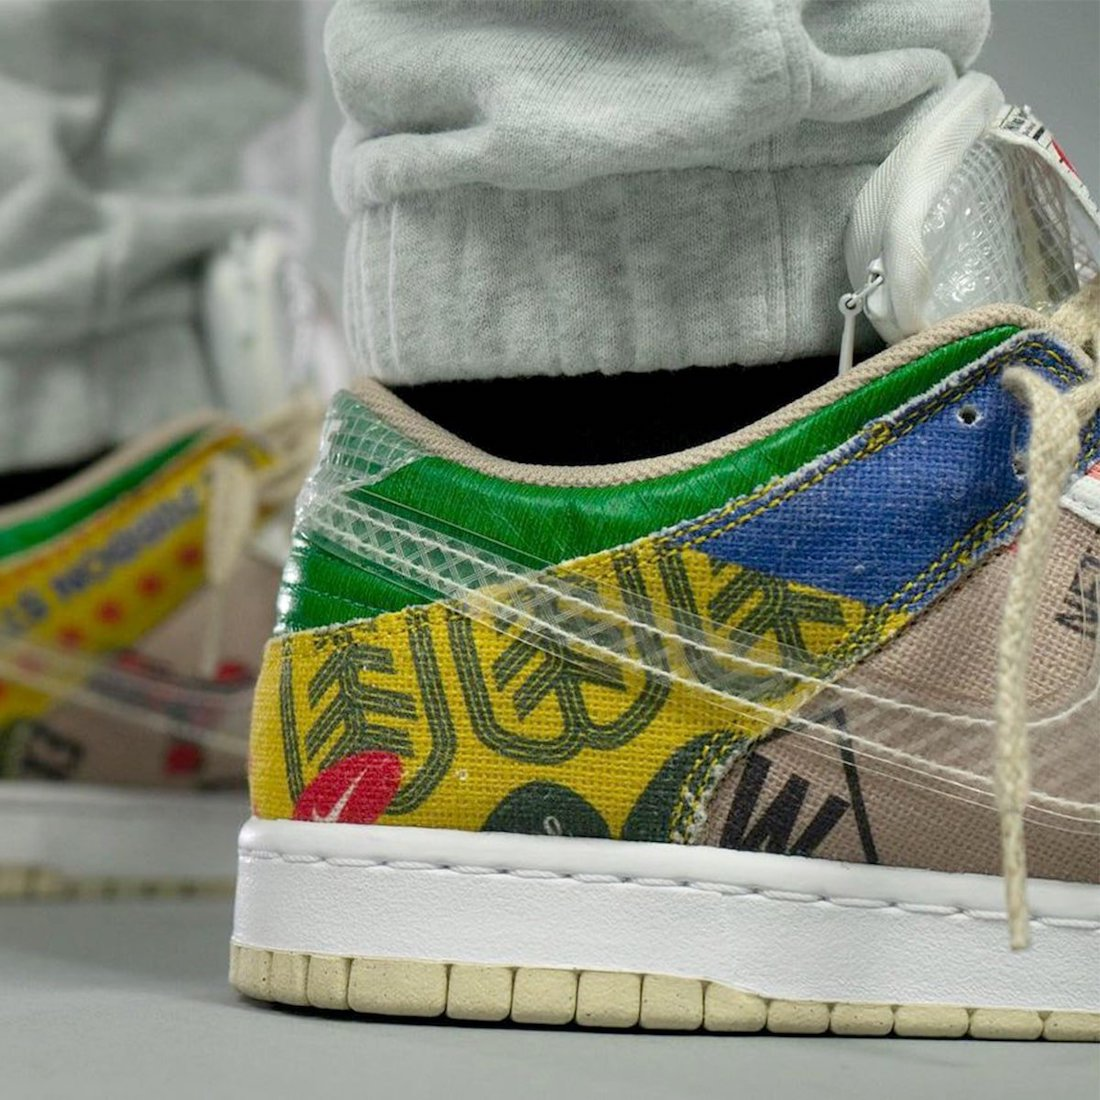 Nike Dunk Low Thank You For Caring DA6125-900 On Feet